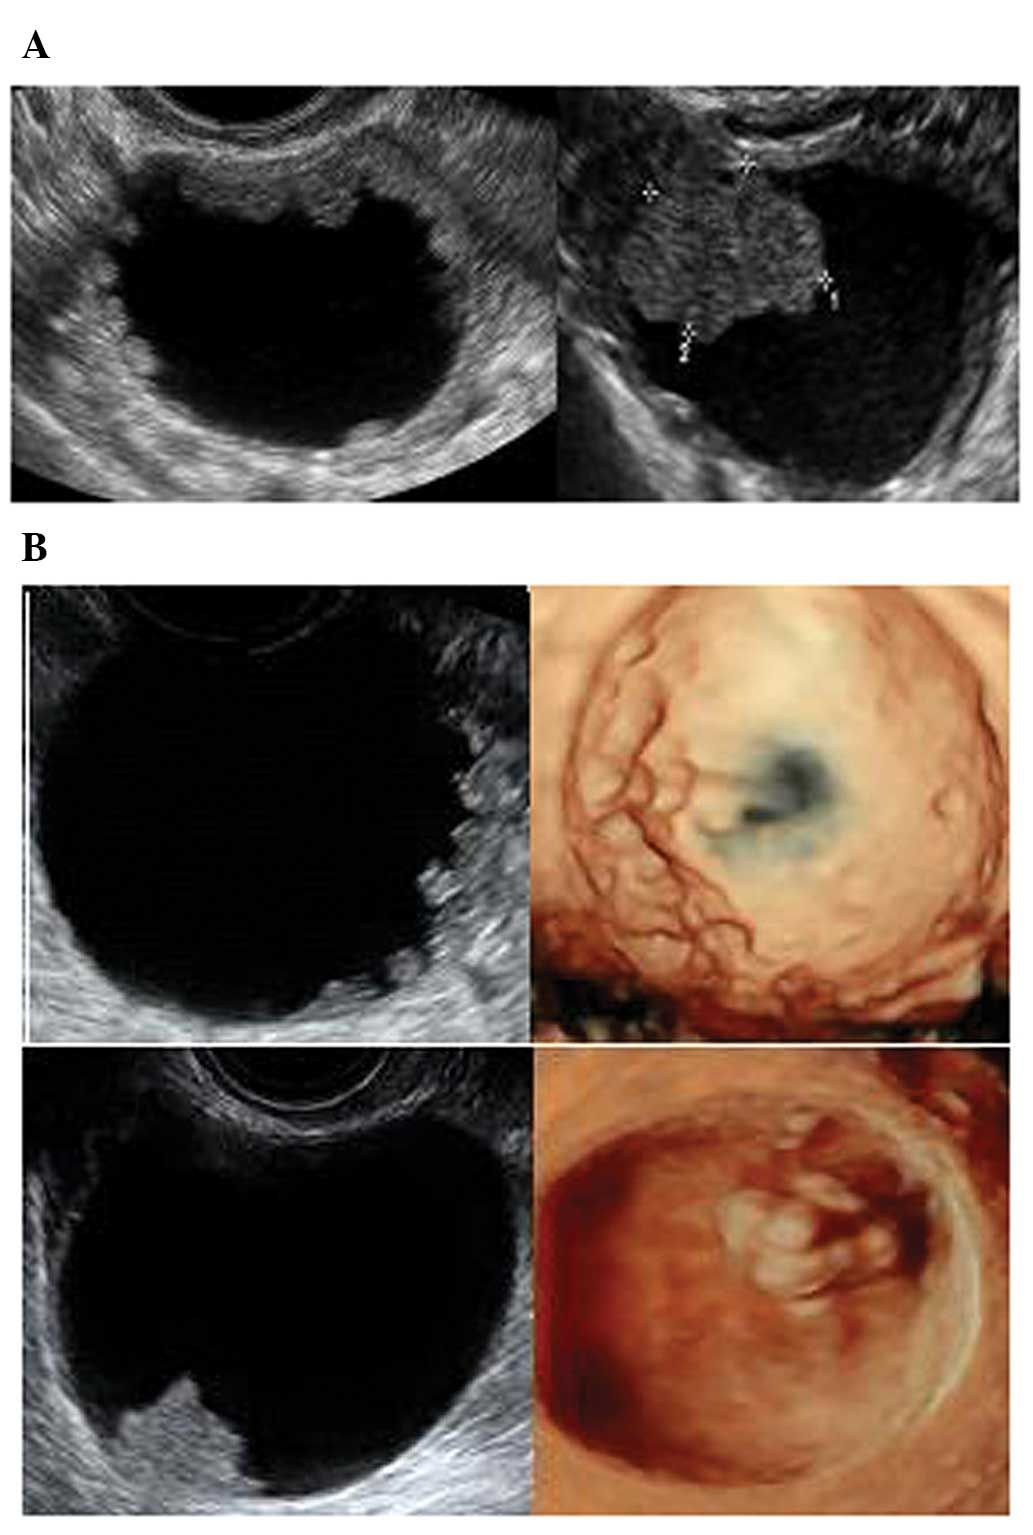 Ovarian Serous Borderline Tumors A Papillary Projection With Irregular Surface B Papillary Project Ovarian Tumor Ultrasound Diagnostic Medical Sonography